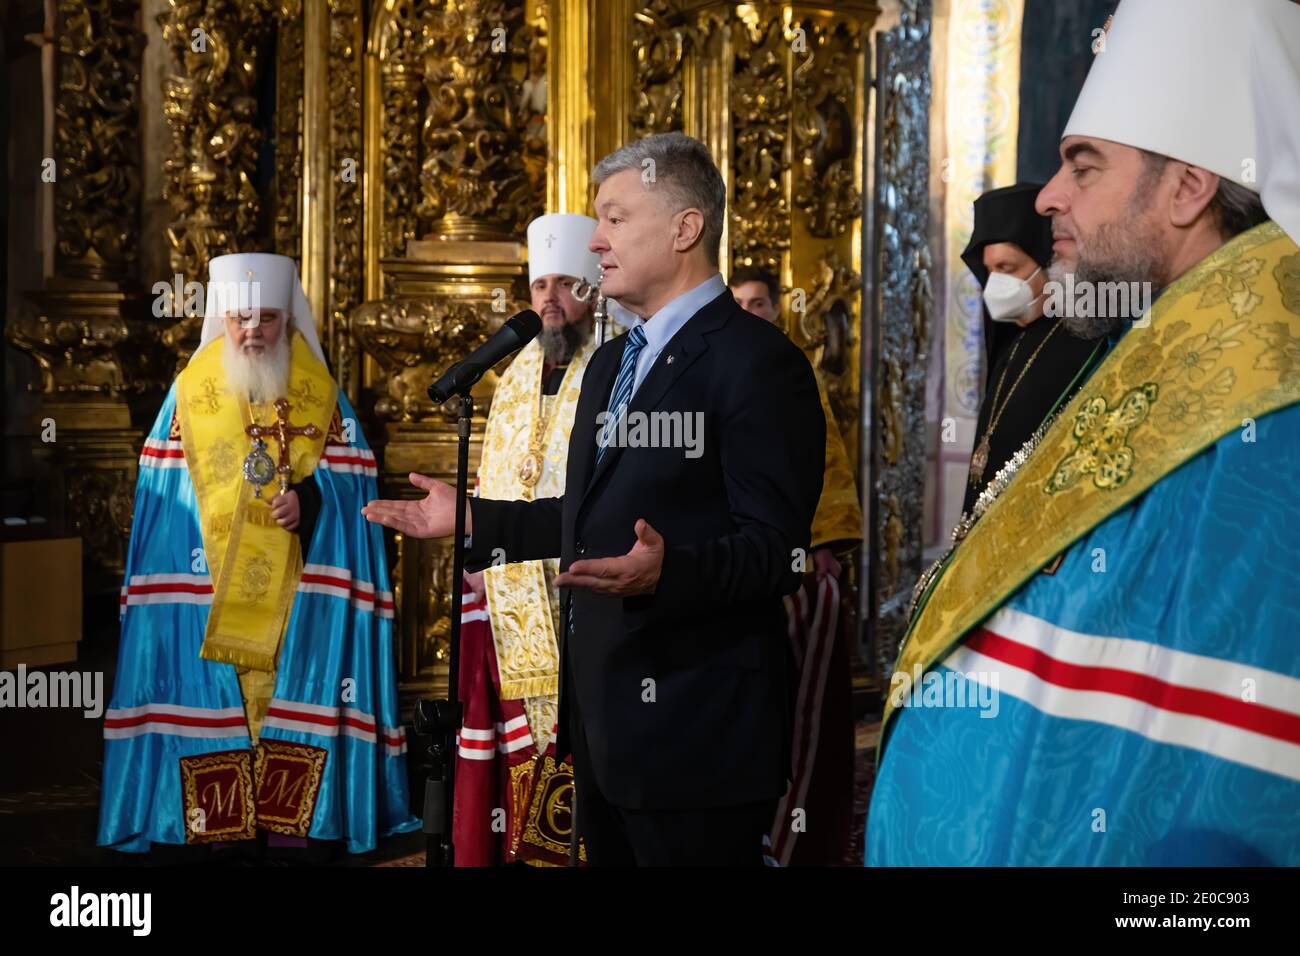 KYIV, UKRAINE - Dec. 15, 2020: Fifth President of Ukraine Petro Poroshenko during Festive service on the occasion of the second anniversary of the Unification Council in Saint Sophia Cathedral, Kyiv Stock Photo